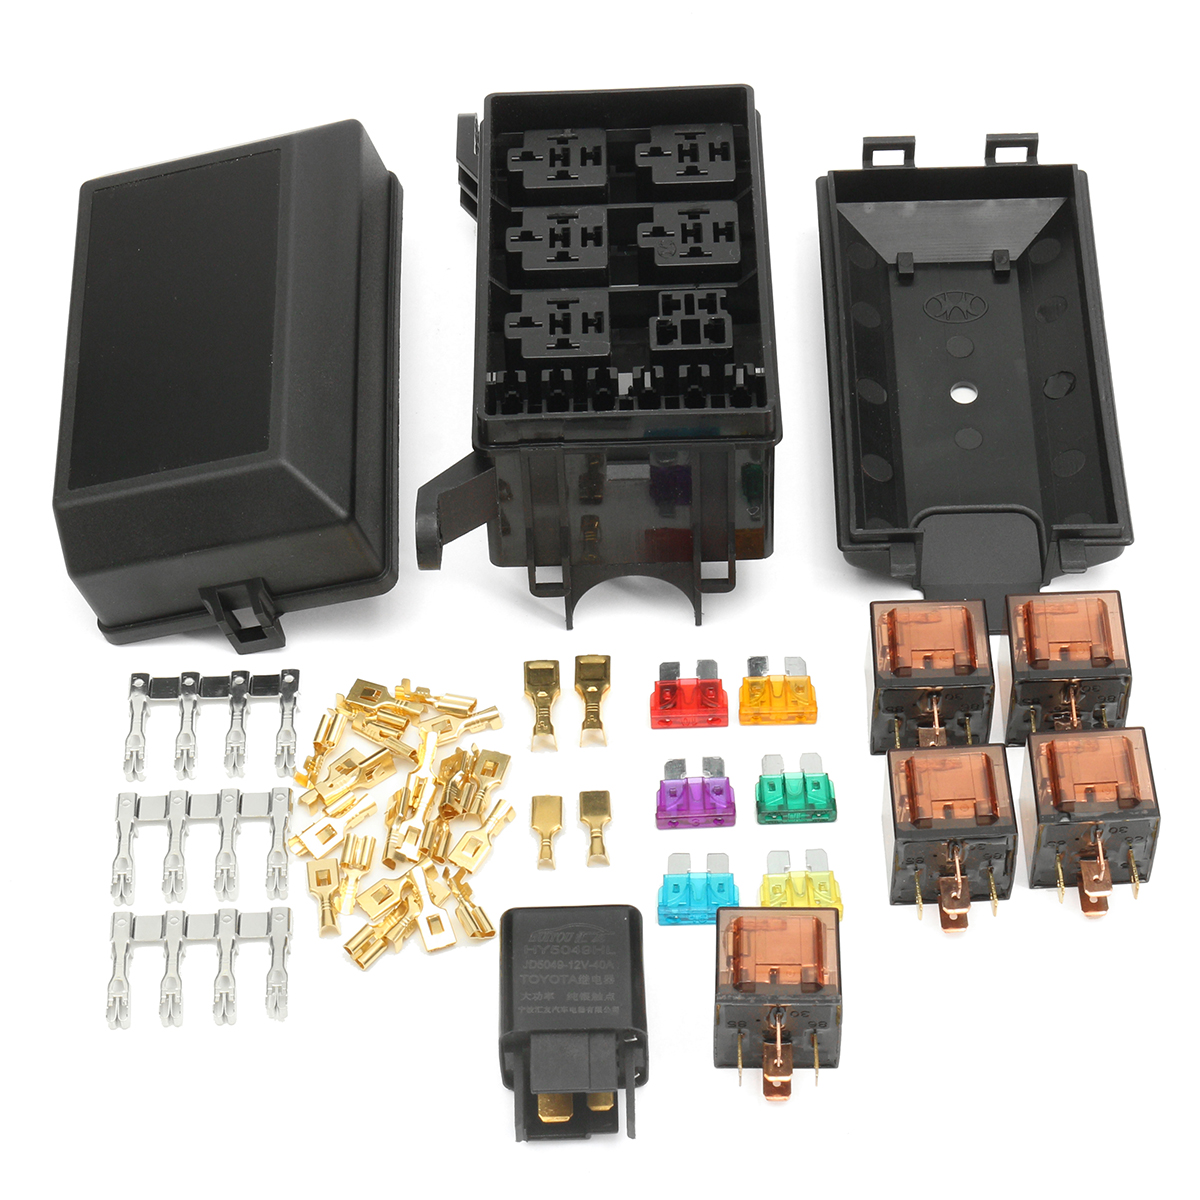 hight resolution of fuse box auto 6 relay block holders 5 road fit for car trunk atv mix fuse